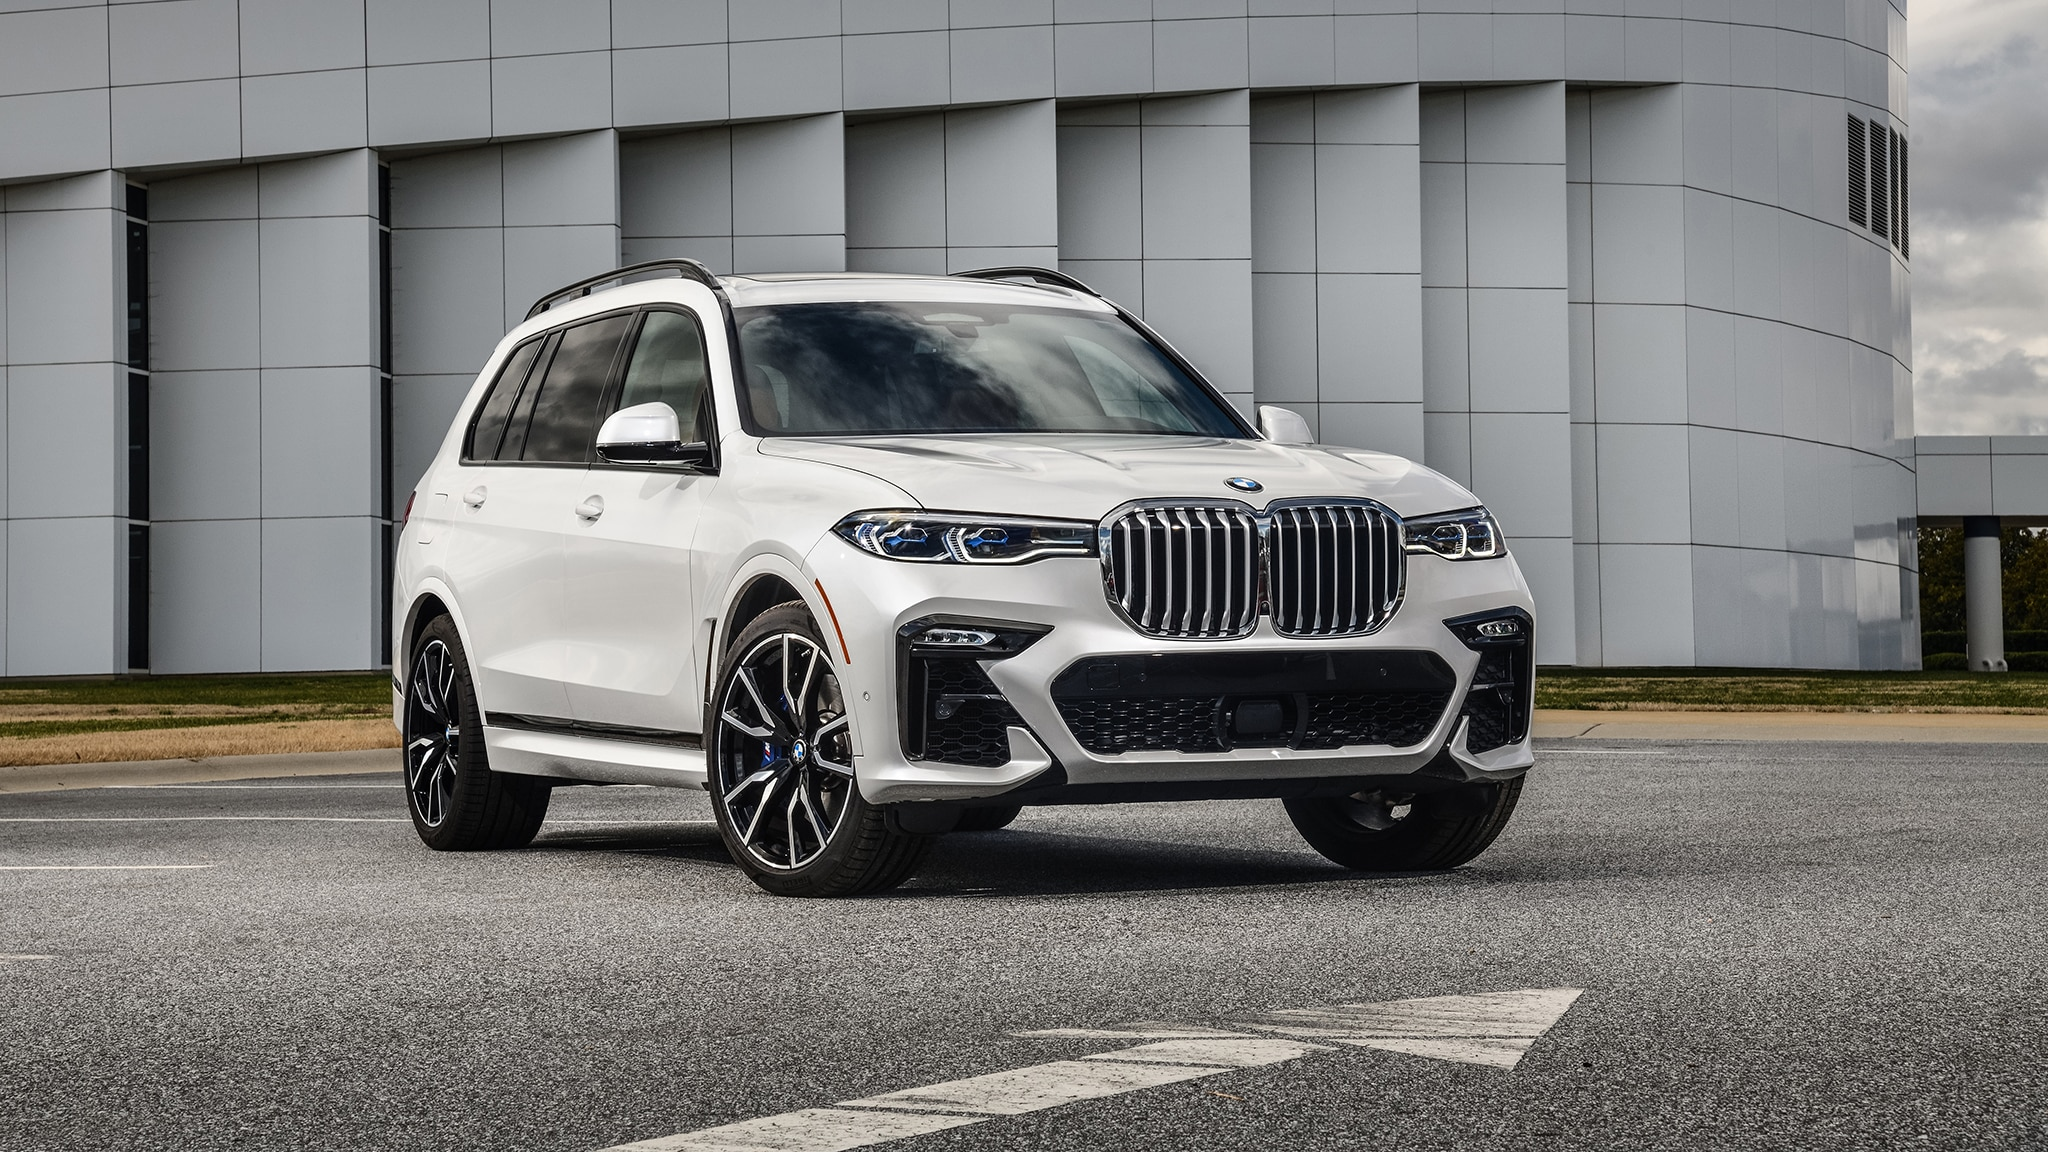 2019 Bmw X7 First Drive The 7 Series Of Luxury Suvs